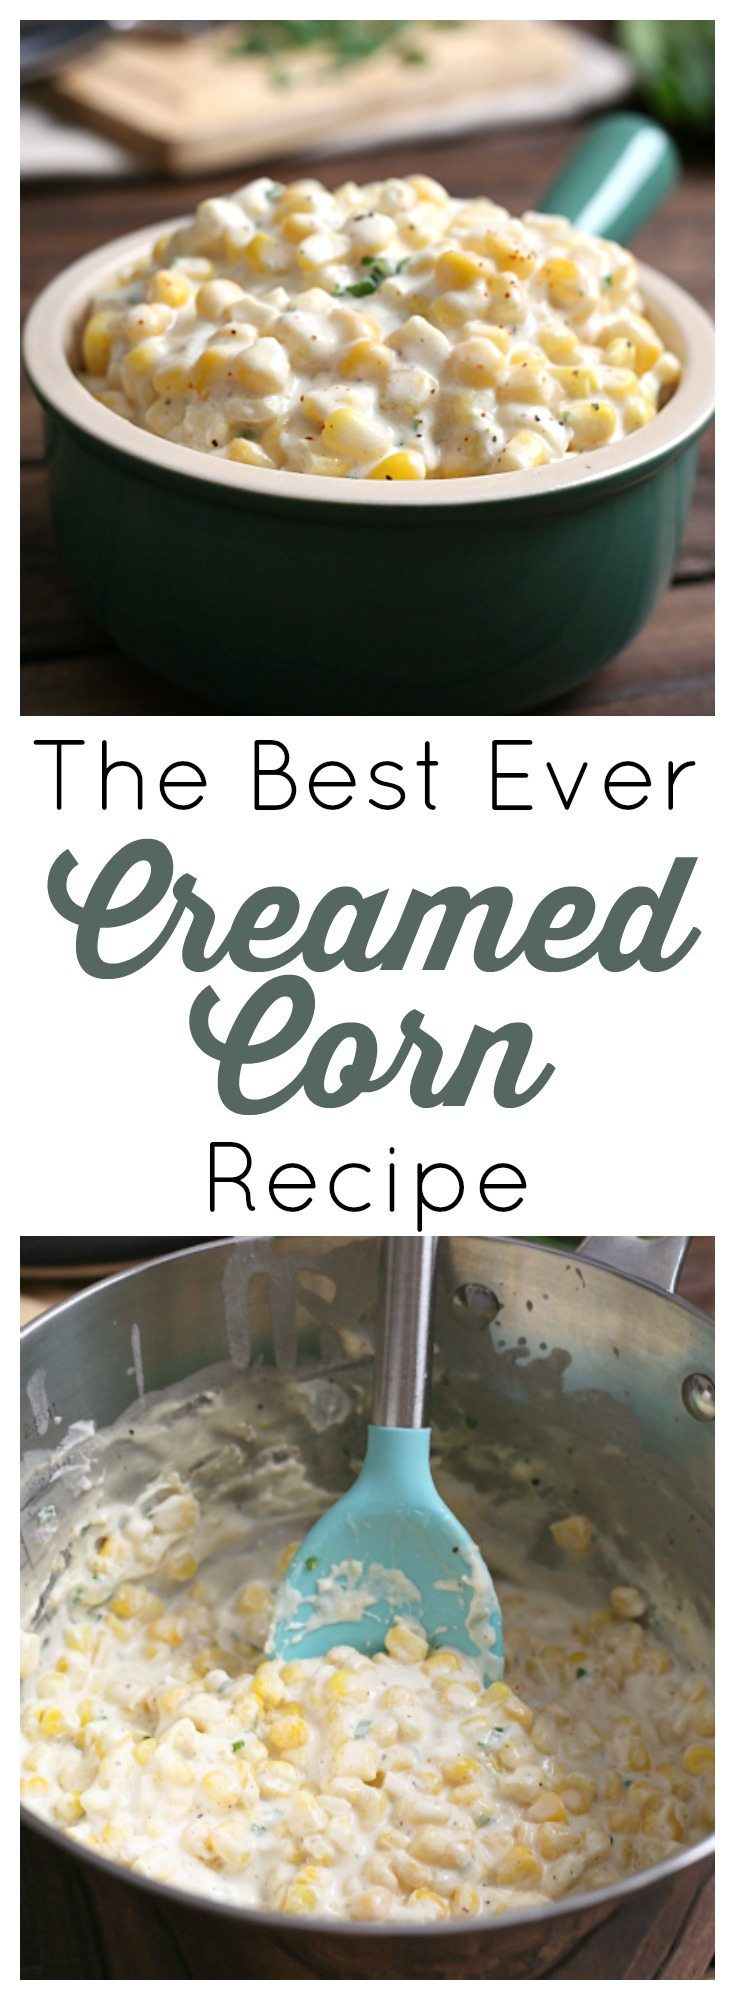 This creamed corn side dish is the perfect balance of sweetness and spice.Don't skimp on the fat, just embrace this indulgent treat of creamy, buttery, super sweet corn for what it is!